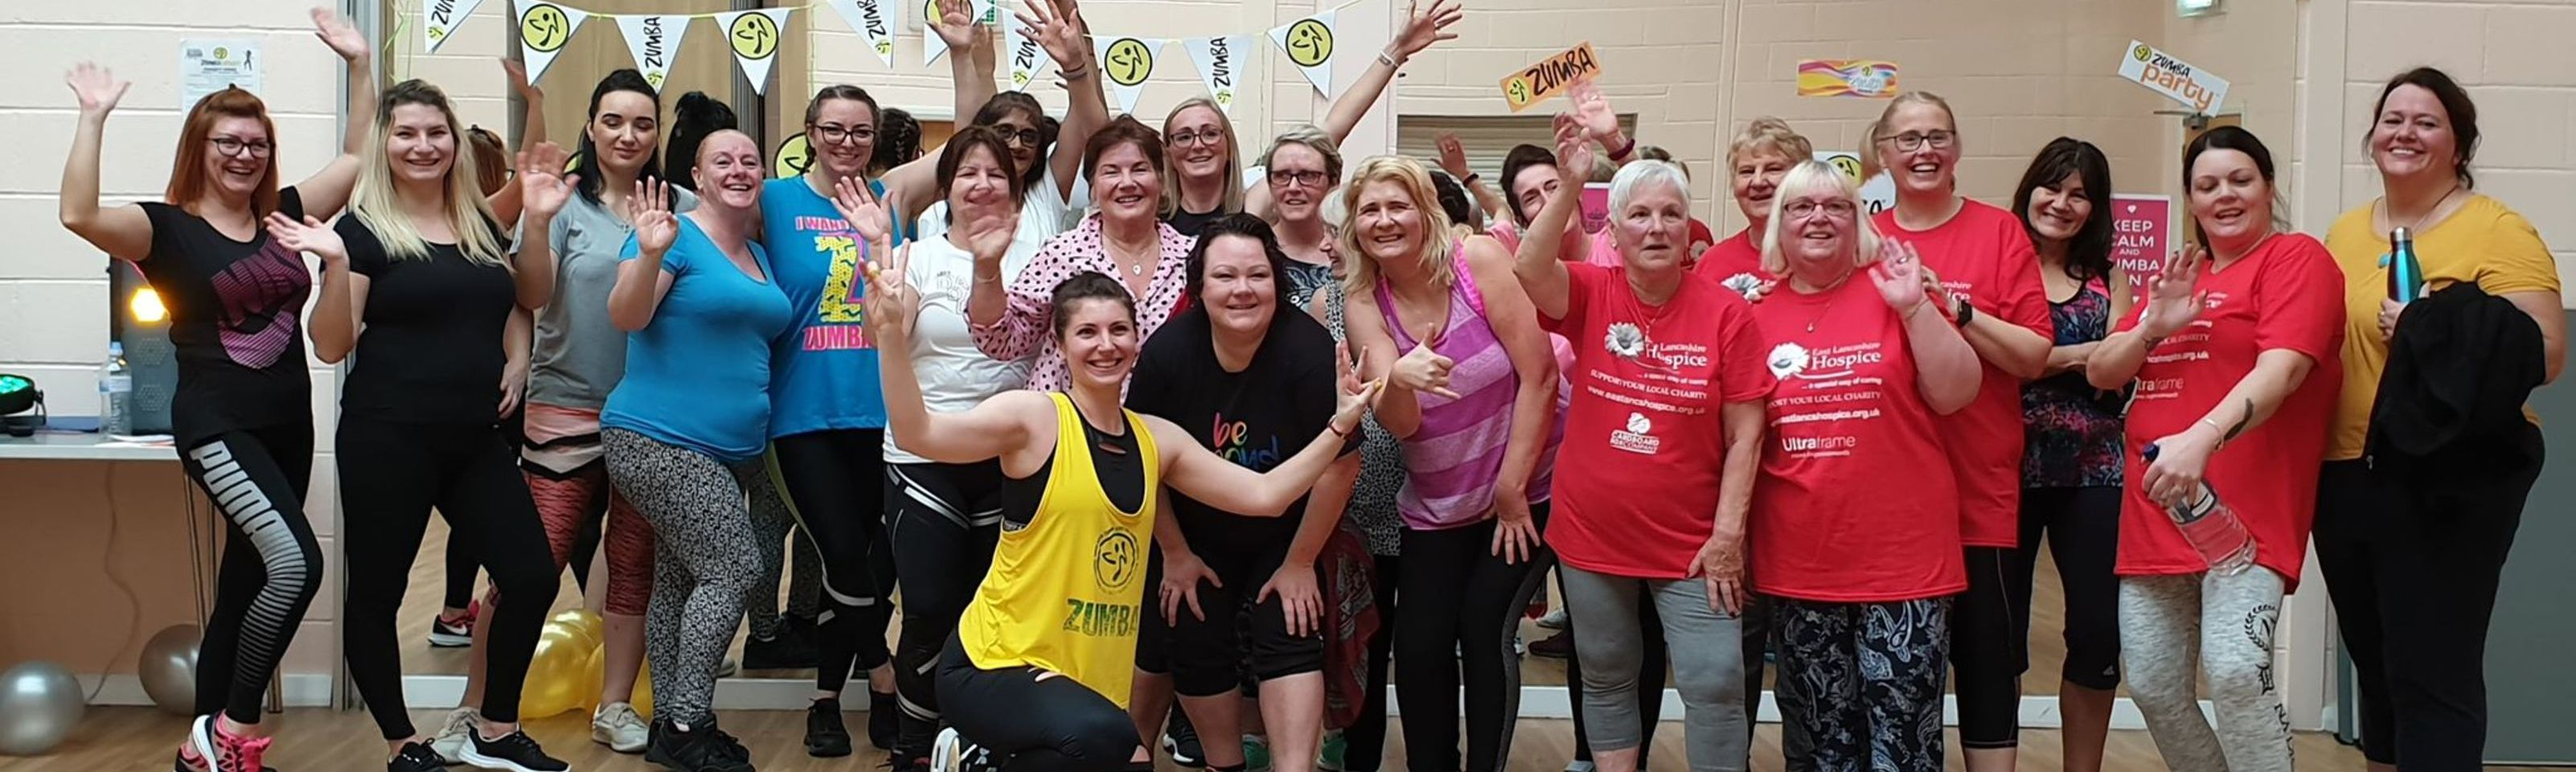 Hip-shaking event raises £1,310 for the hospice